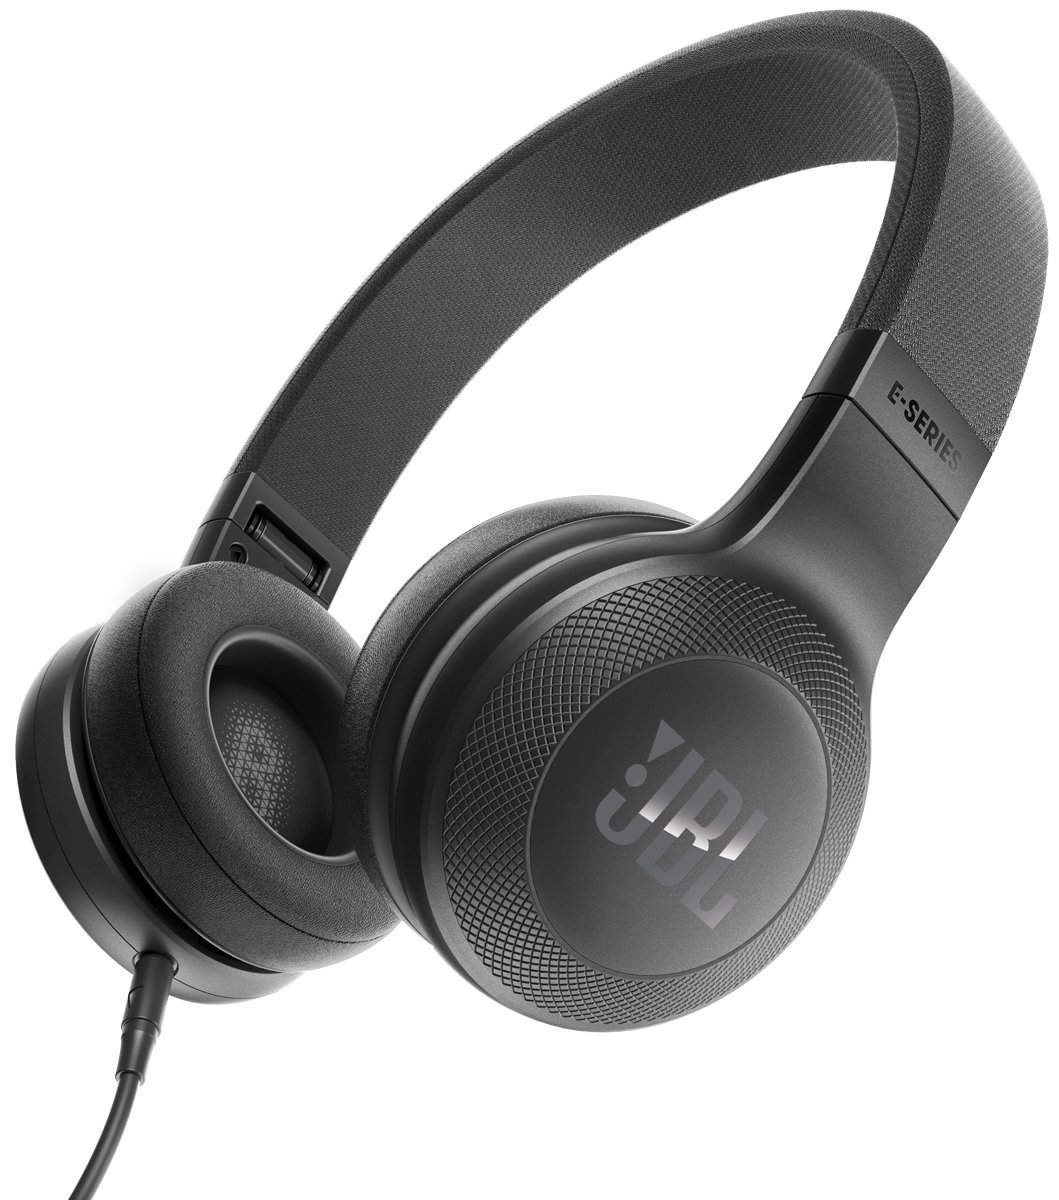 JBL Signature Sound Lightweight On-Ear Headphones Microphone Remote, Black (Non-Retail Packaging) by JBL